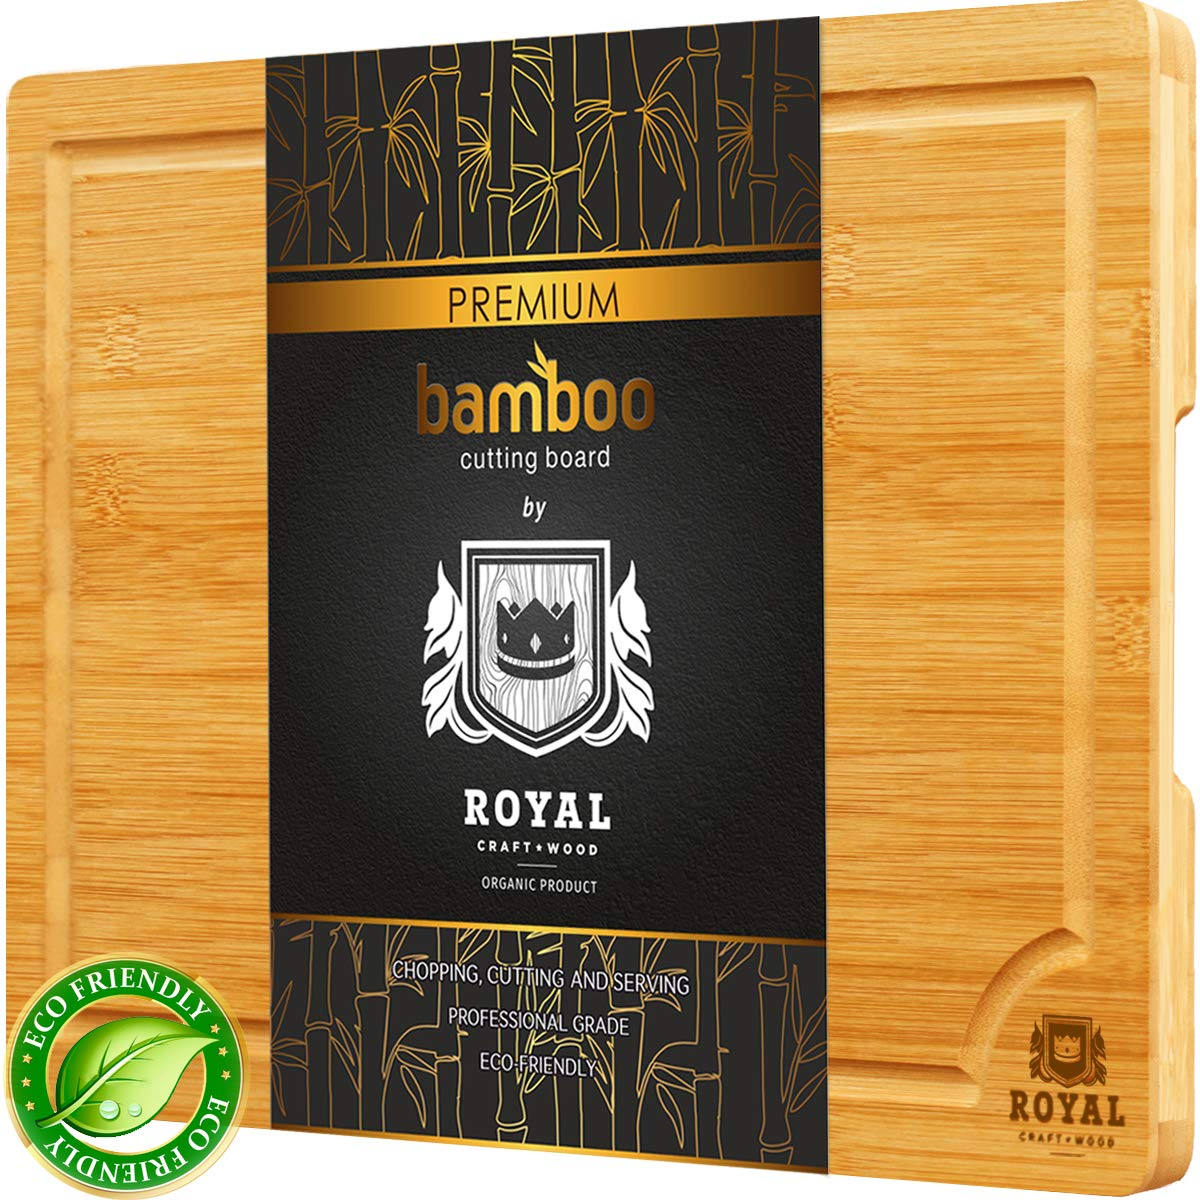 Bamboo Cutting Board w/Juice Groove & Handles - Butcher Block for Chopping Meat & Vegetables - Kitchen Cutting Boards, 10x15 by Royal Craft Wood (Image #1)